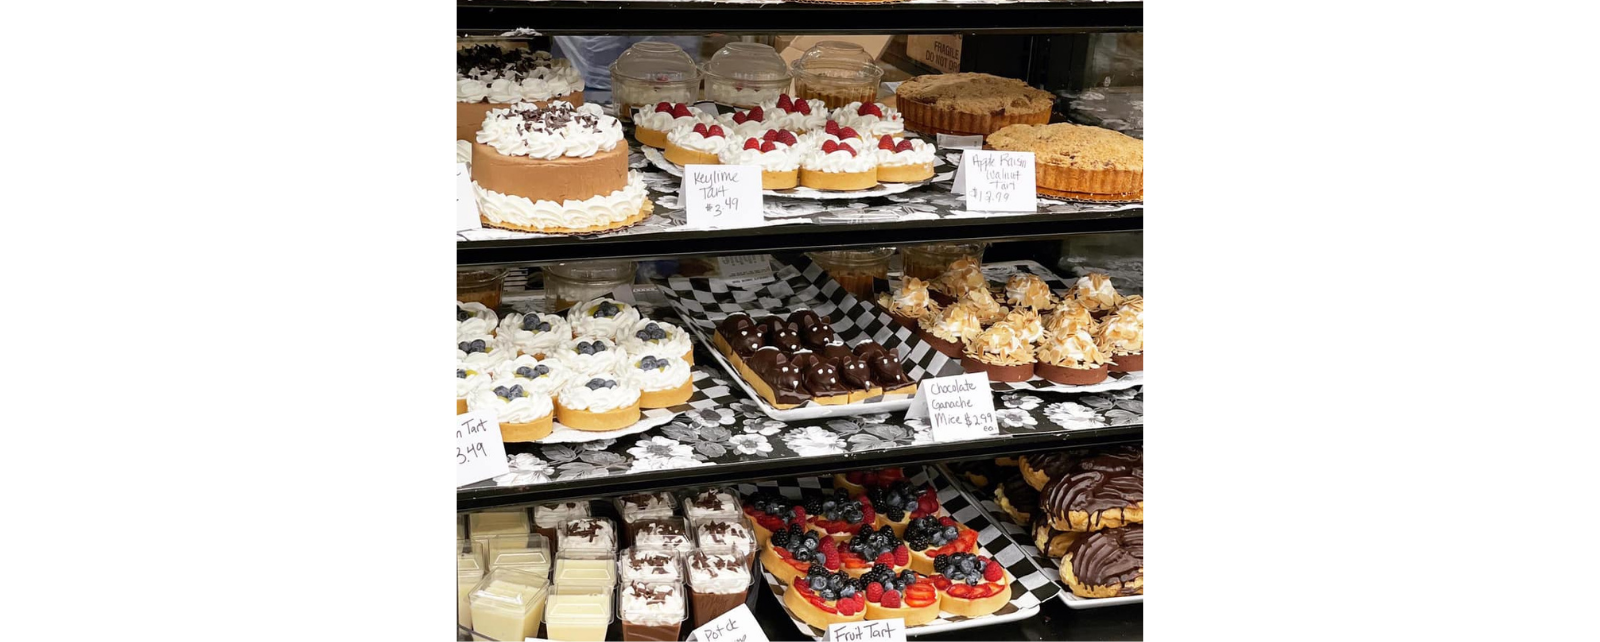 Glass display case showing Libbie Market's signature pastries